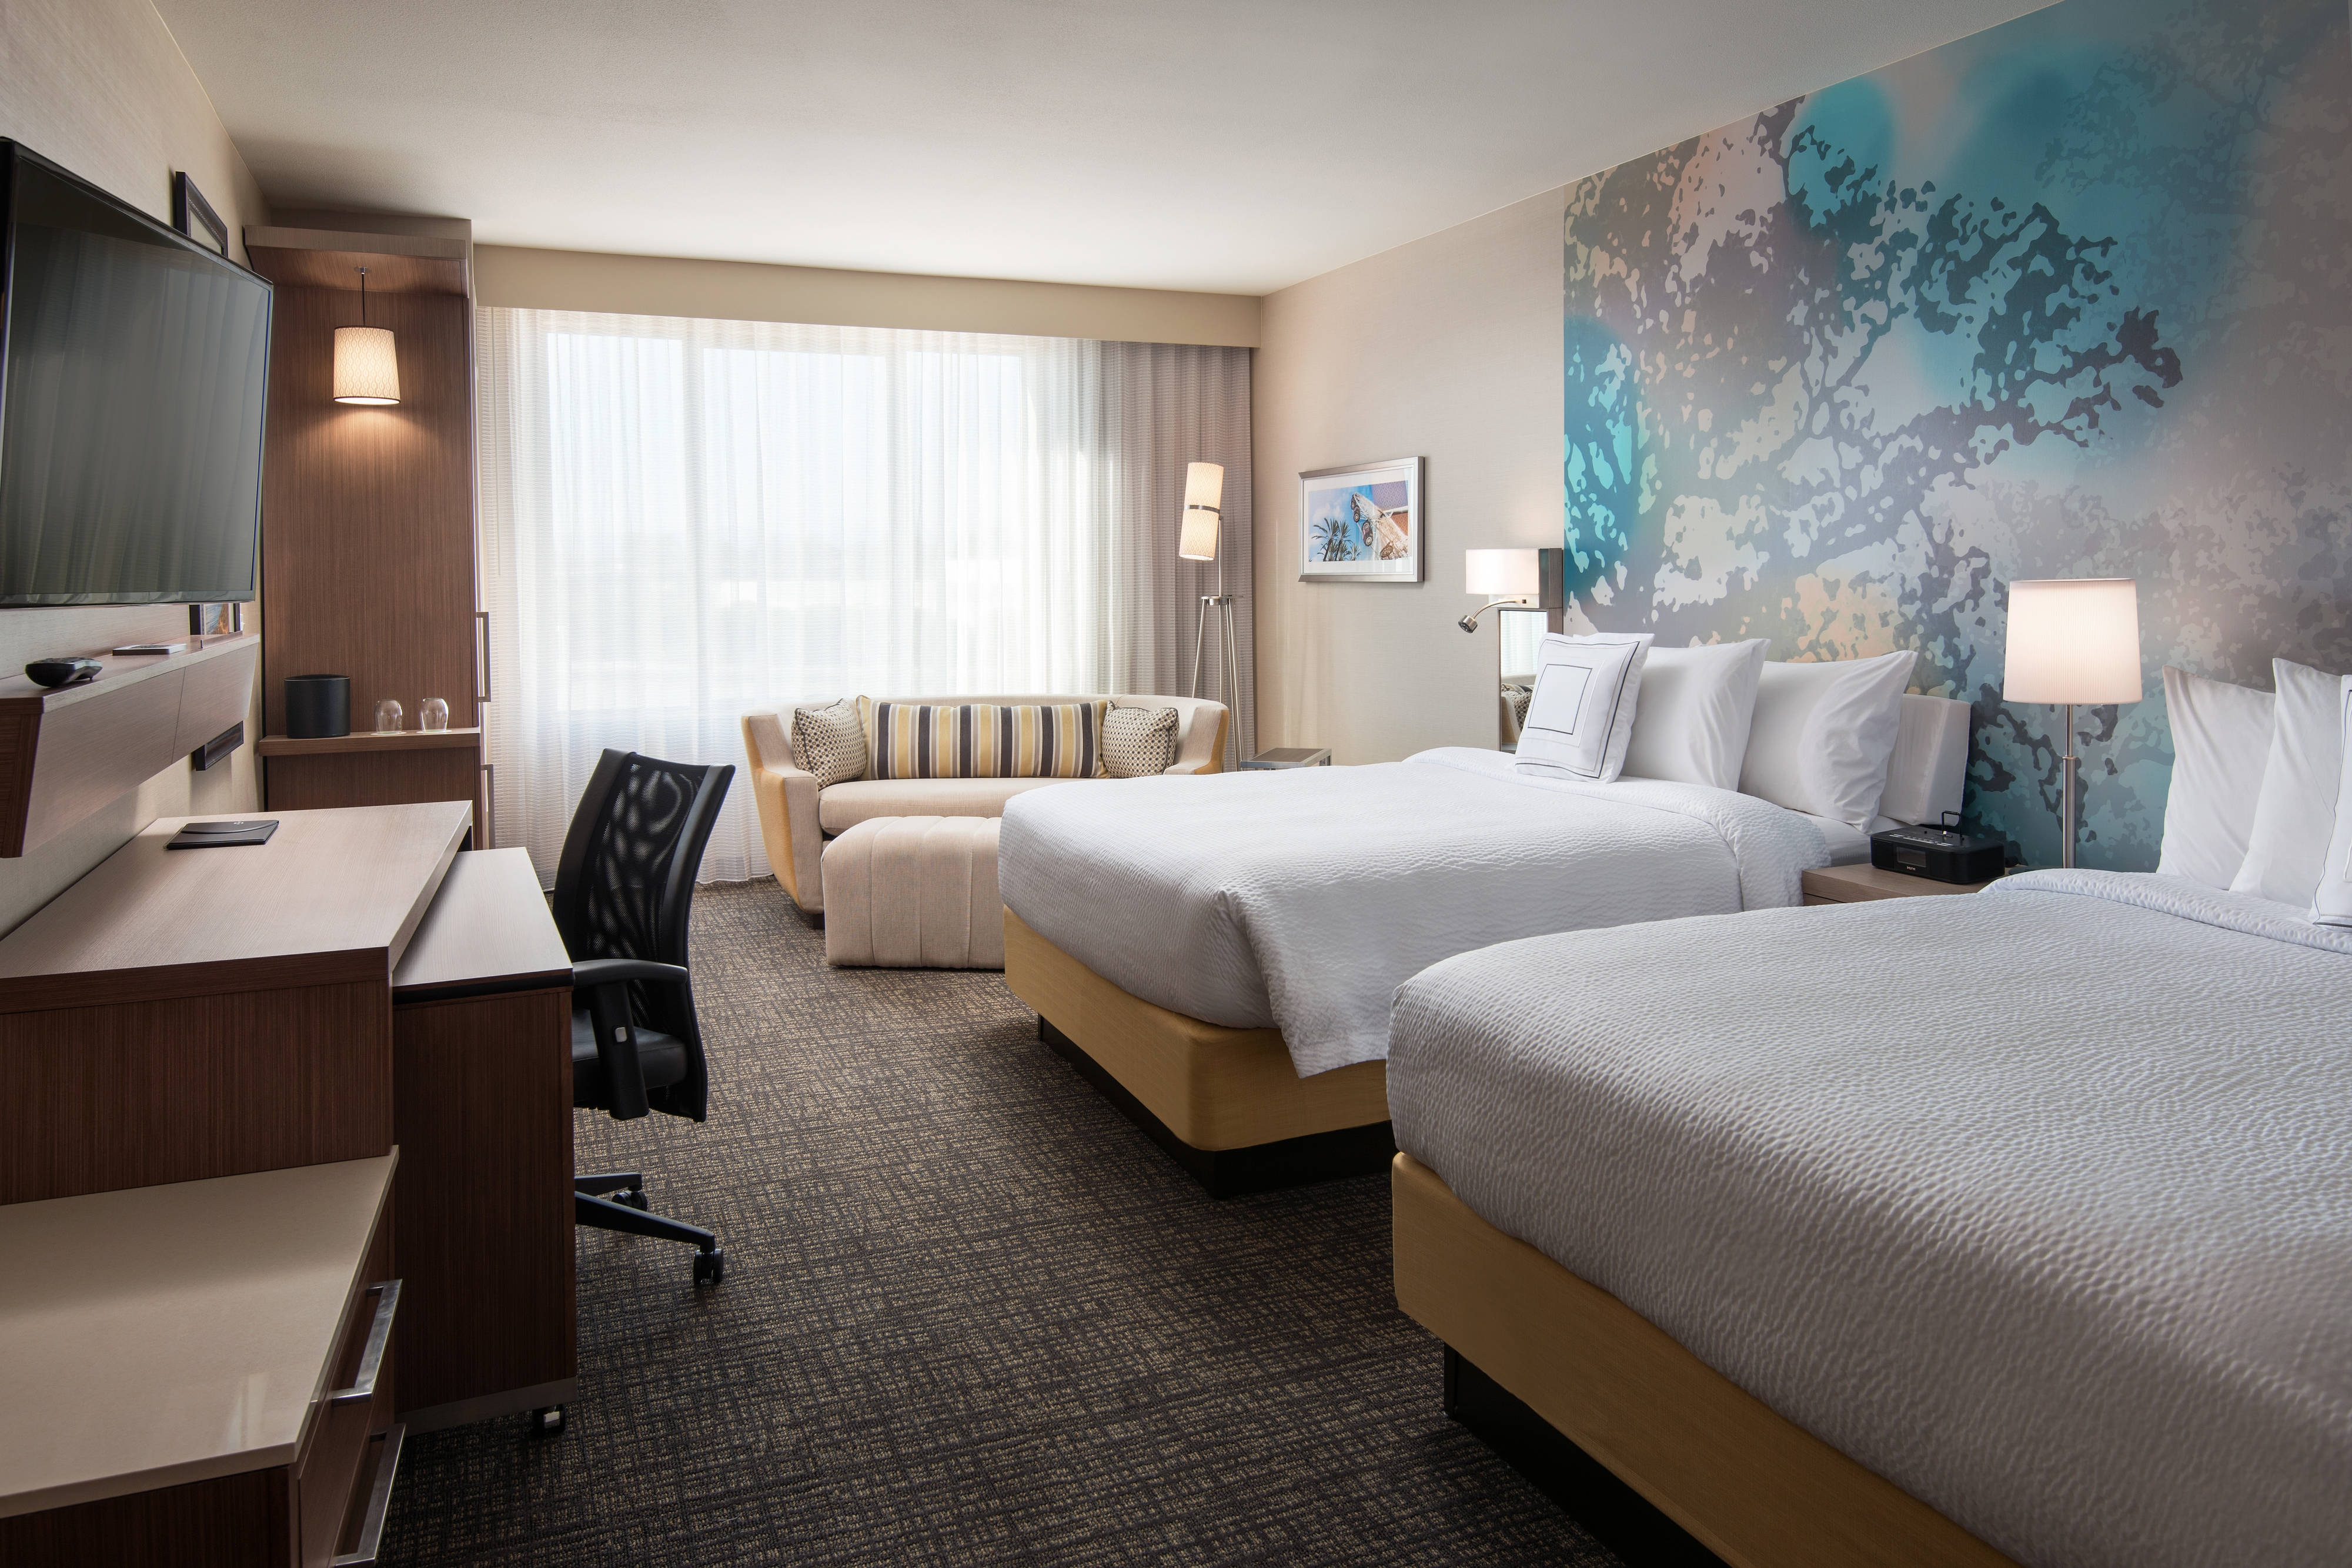 Rooms and hotel suites in irvine california courtyard - Menzies hotel irvine swimming pool ...